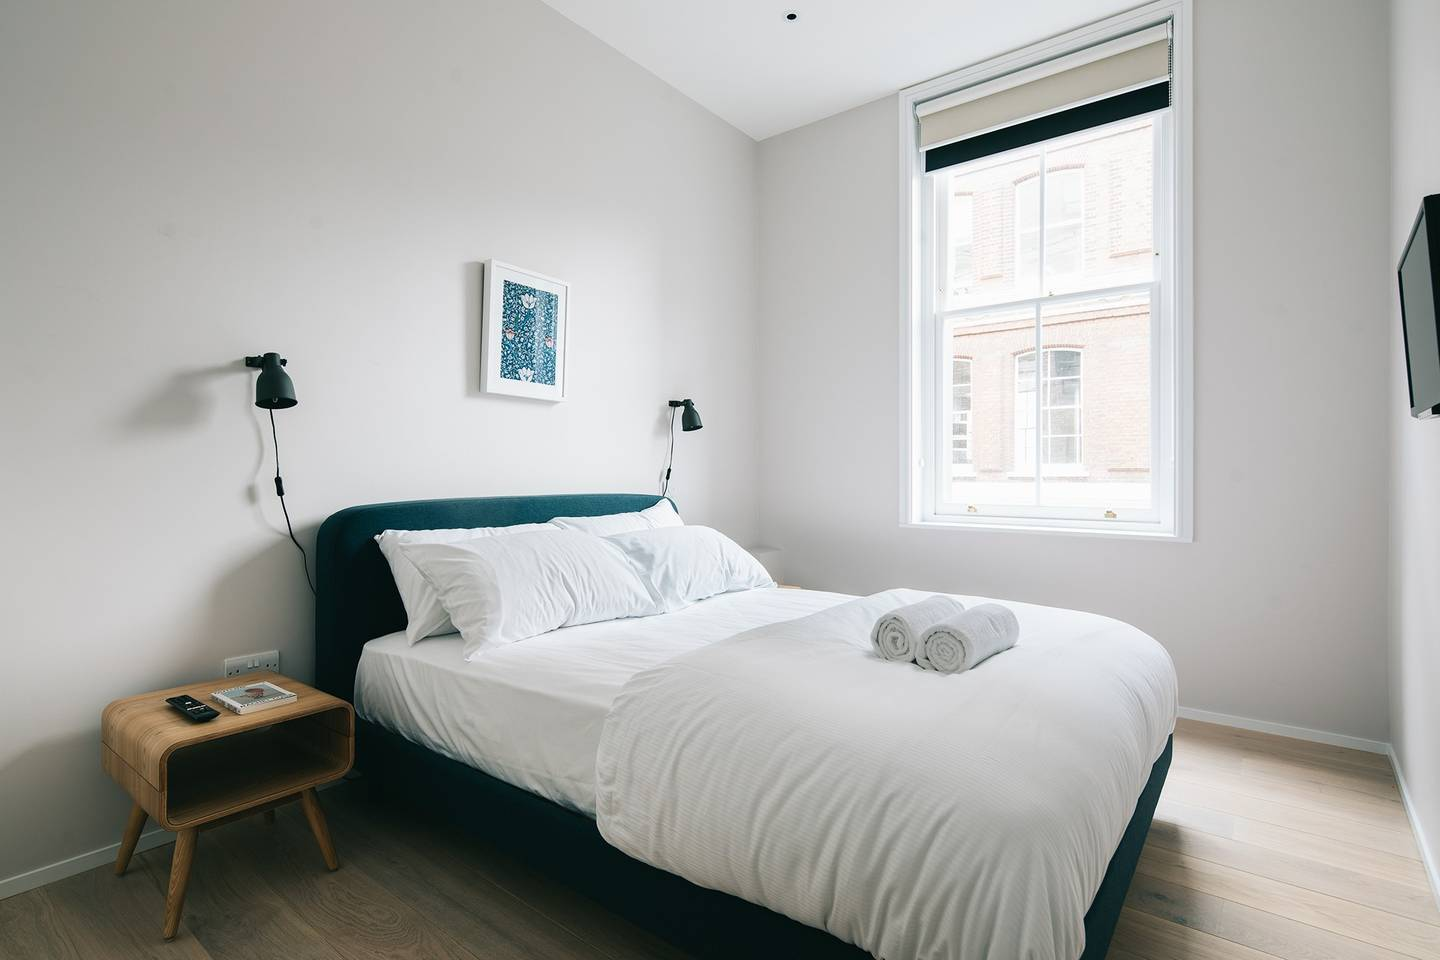 Bedroom at The Charterhouse Apartments - Citybase Apartments